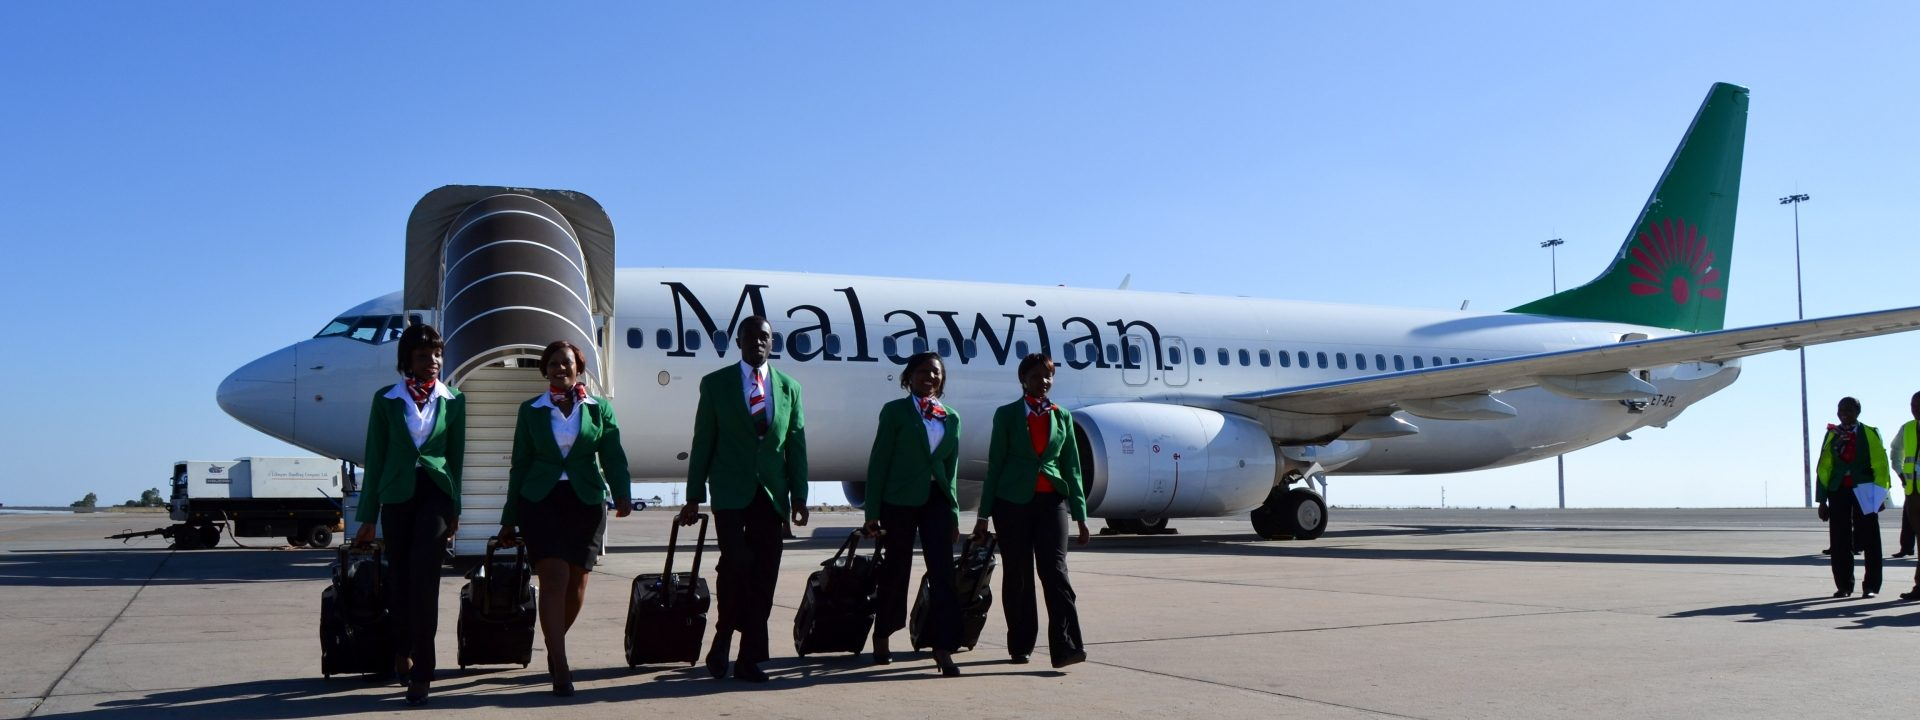 Malawi Airlines Transport Malawi Tourism